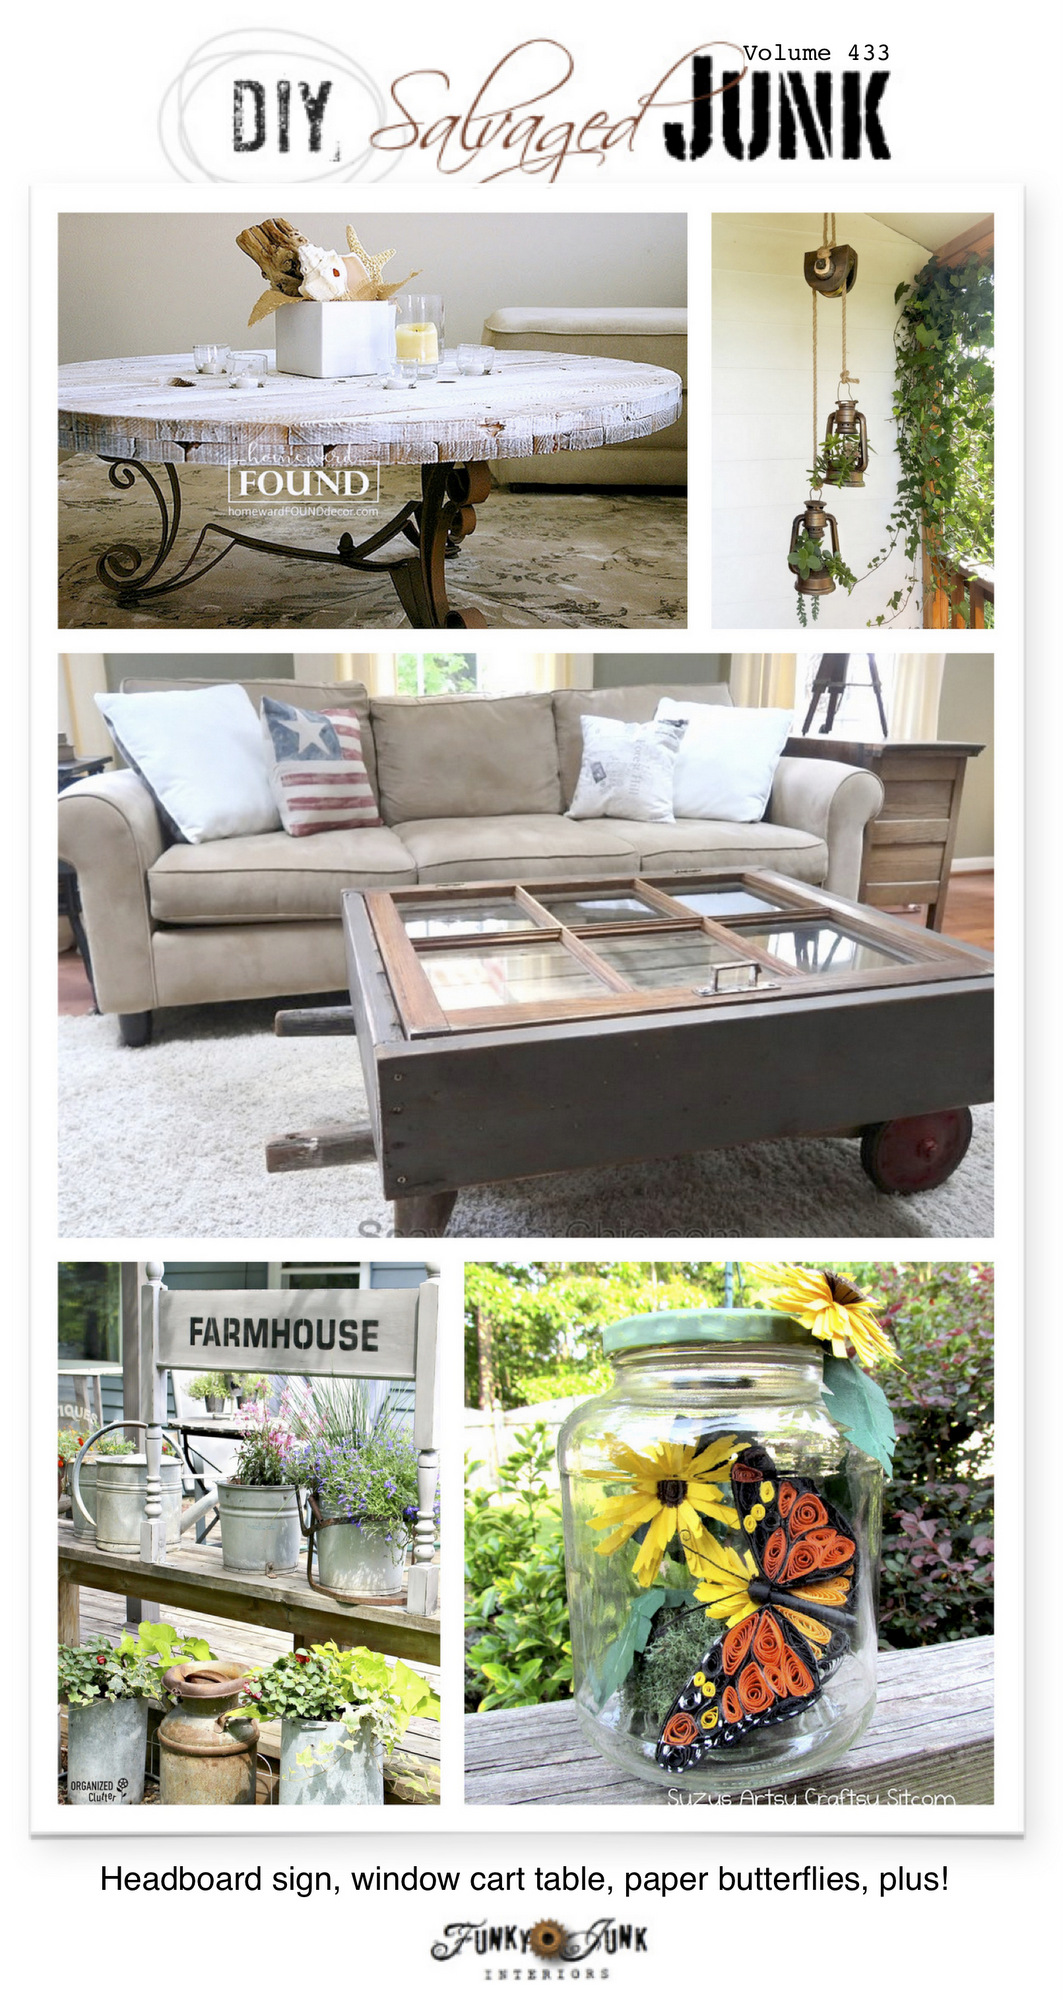 DIY Salvaged Junk Projects 433 - Headboard sign, window cart table, paper butterflies, plus! Features and NEW junk projects!